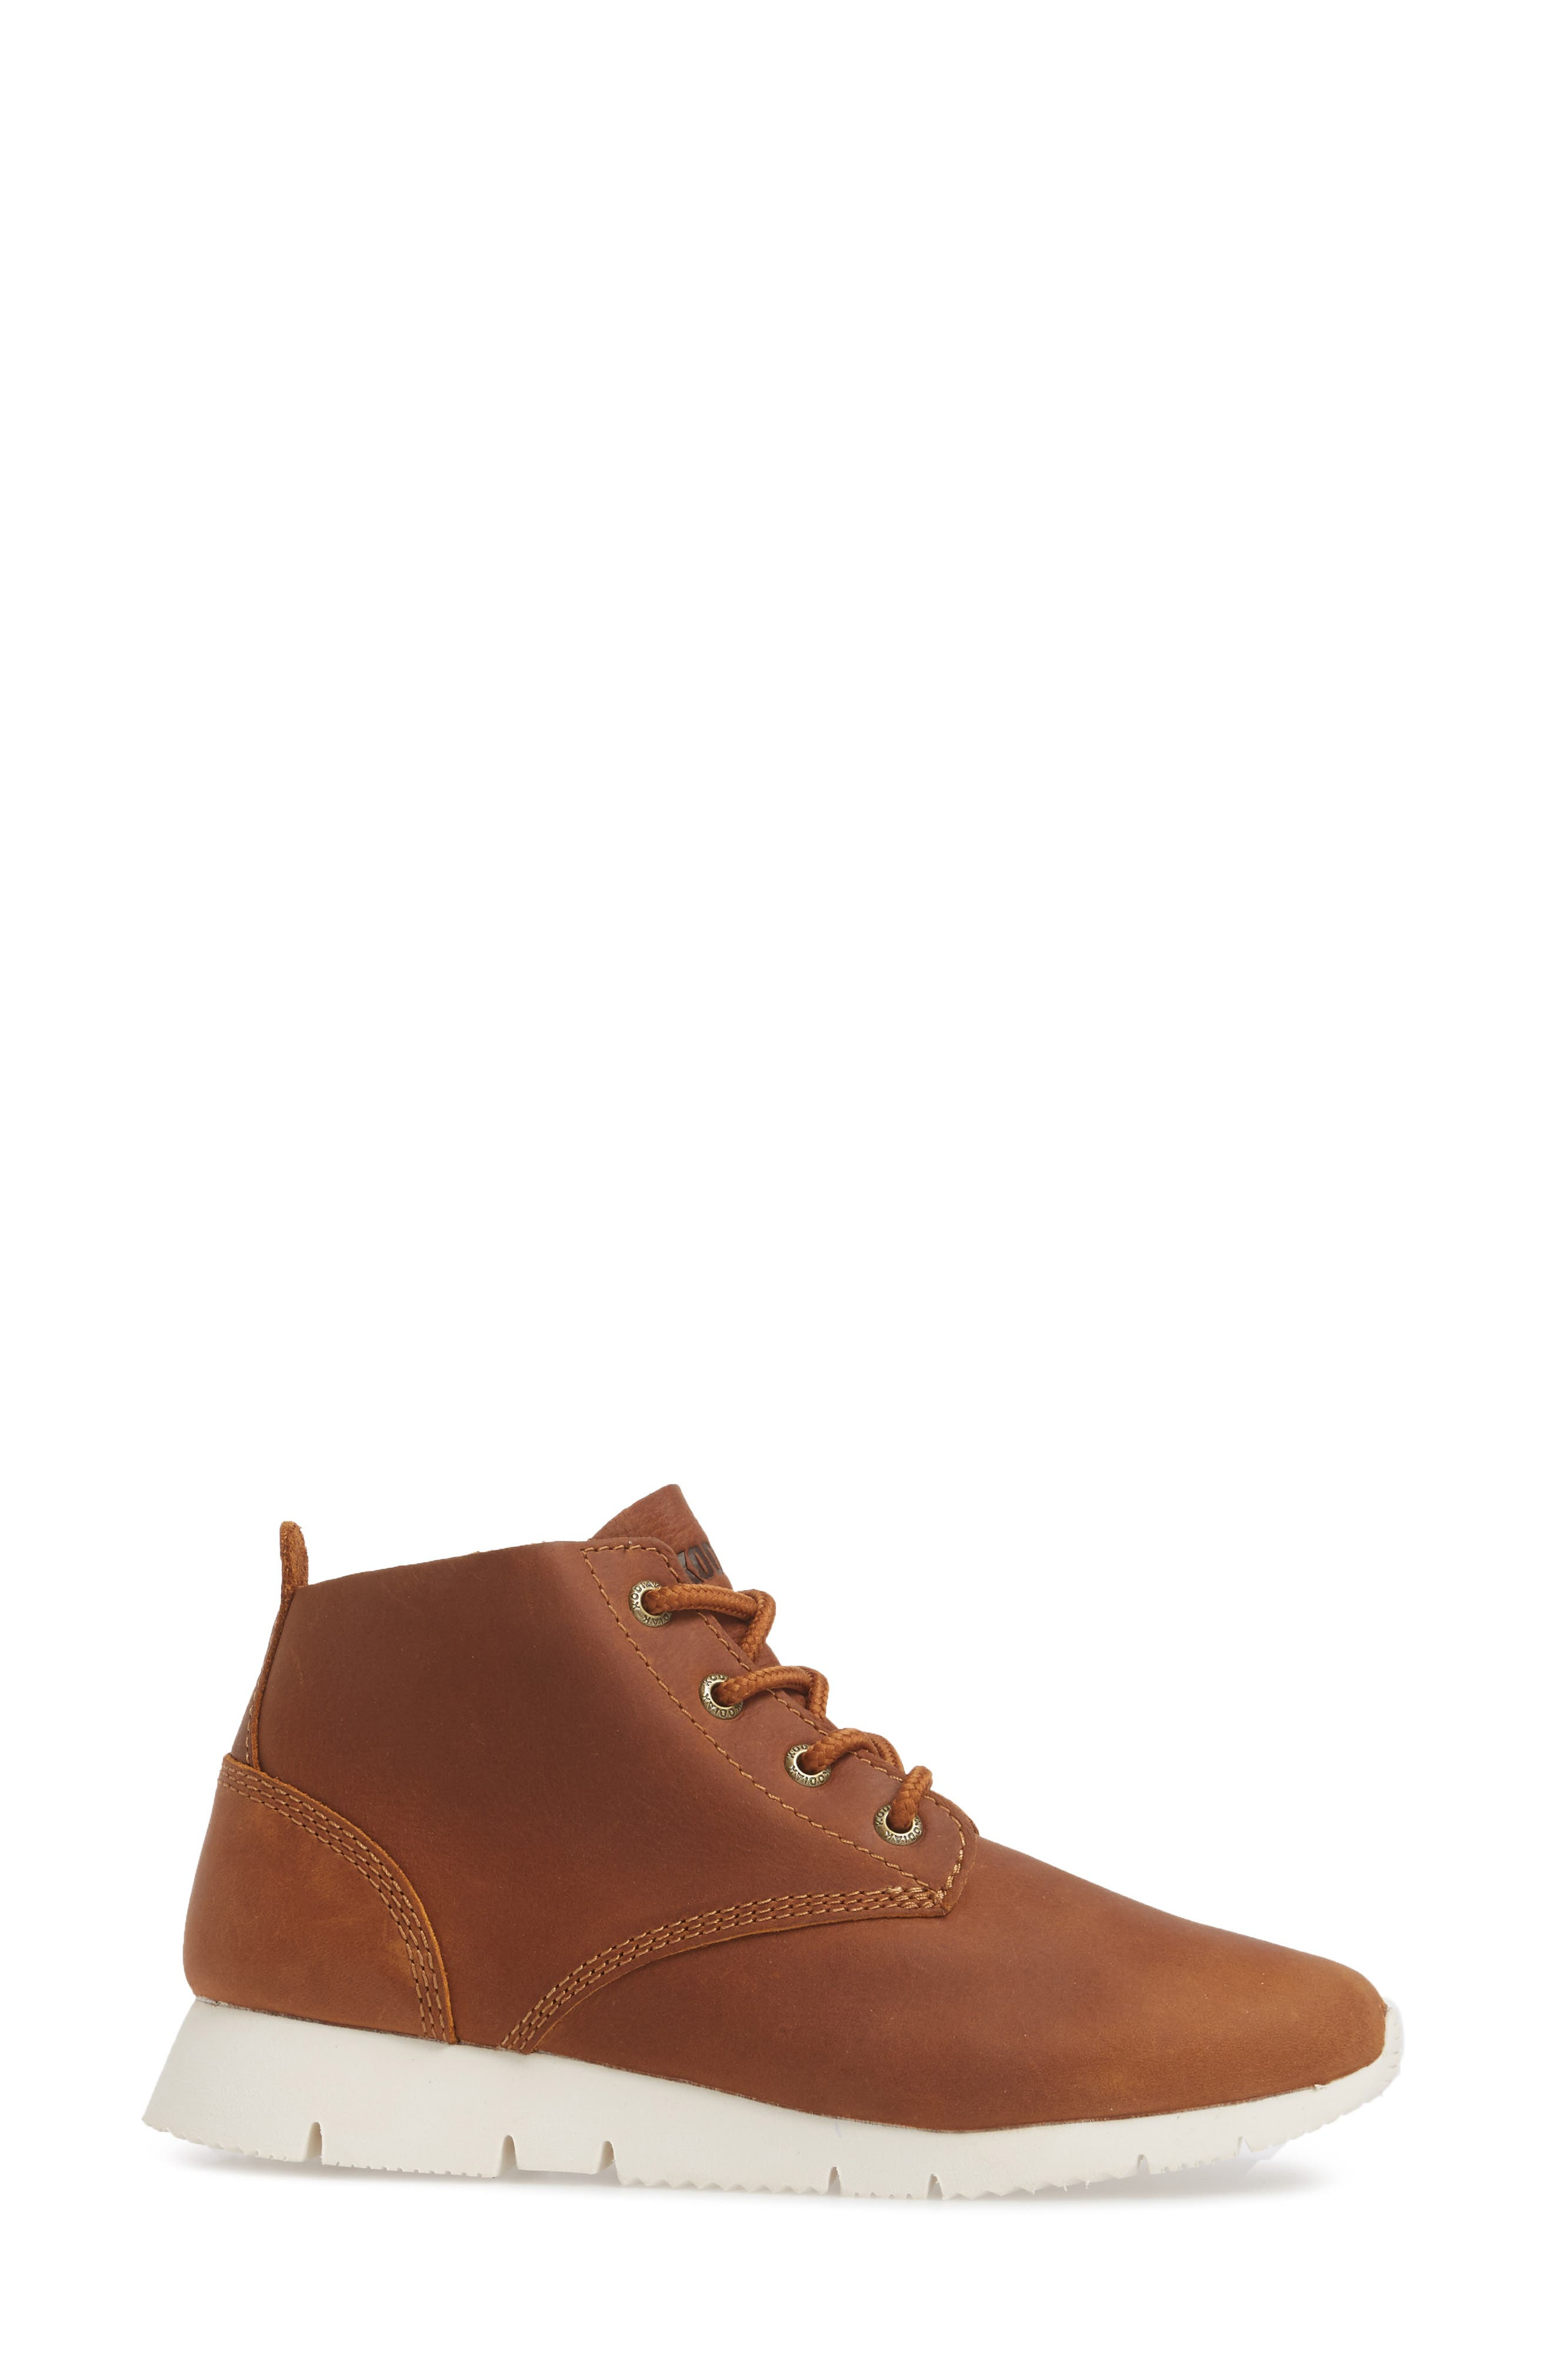 Chukka Boot,                             Alternate thumbnail 3, color,                             Peanut Leather